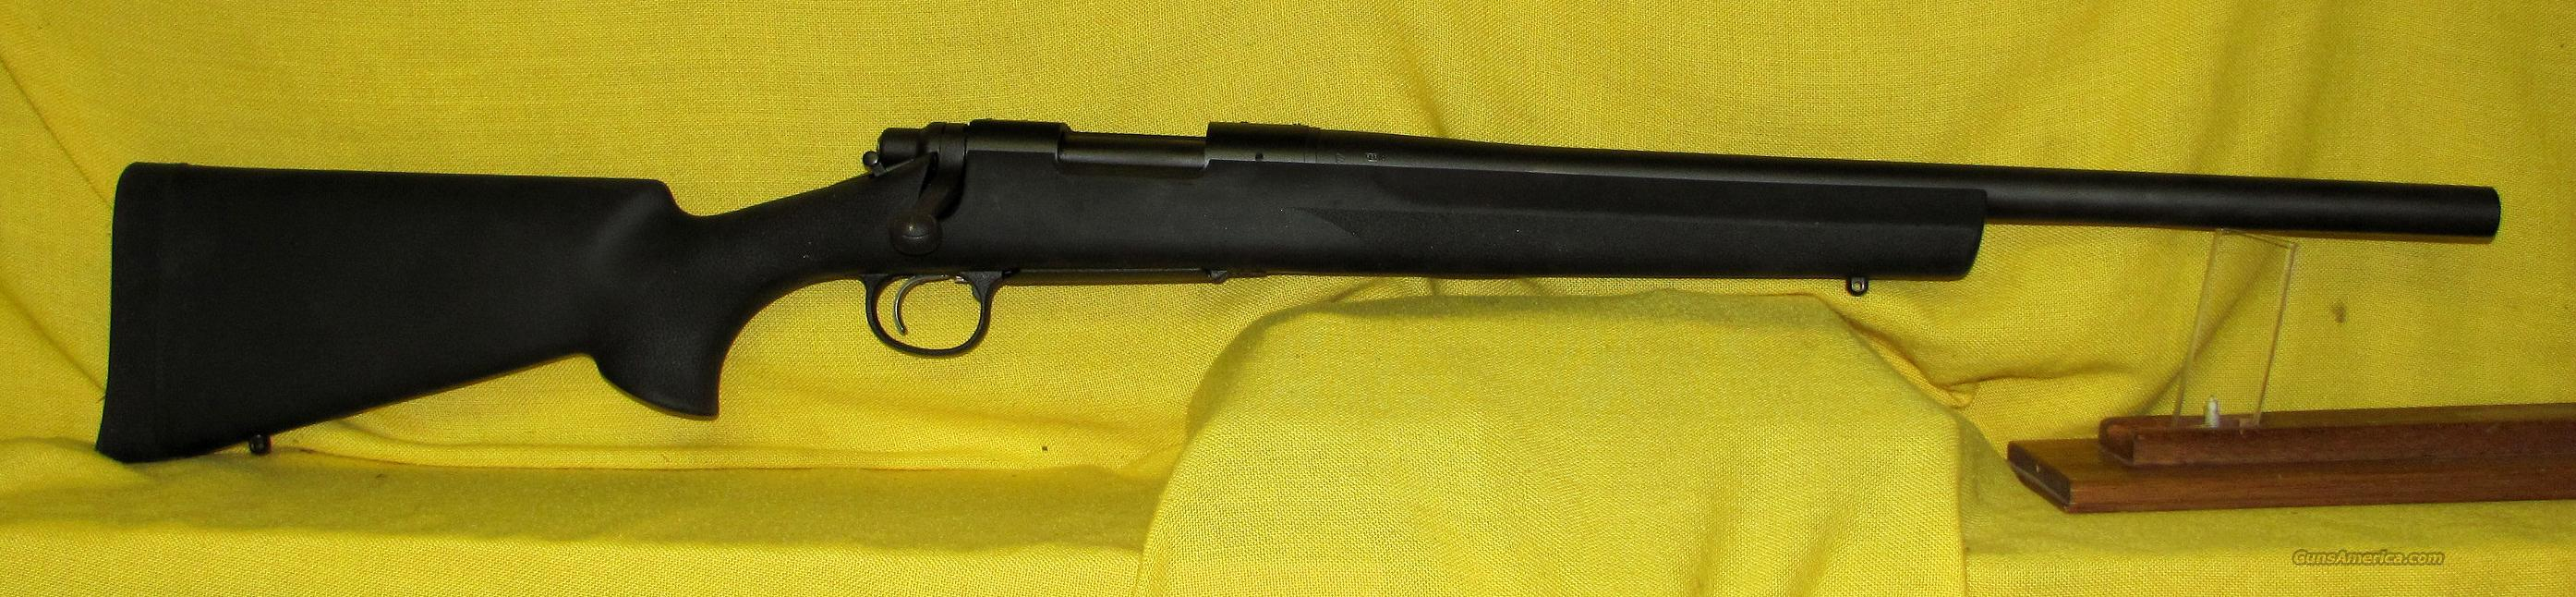 "REMINGTON 700 .308 20"" BARREL  Guns > Rifles > Remington Rifles - Modern > Model 700 > Tactical"